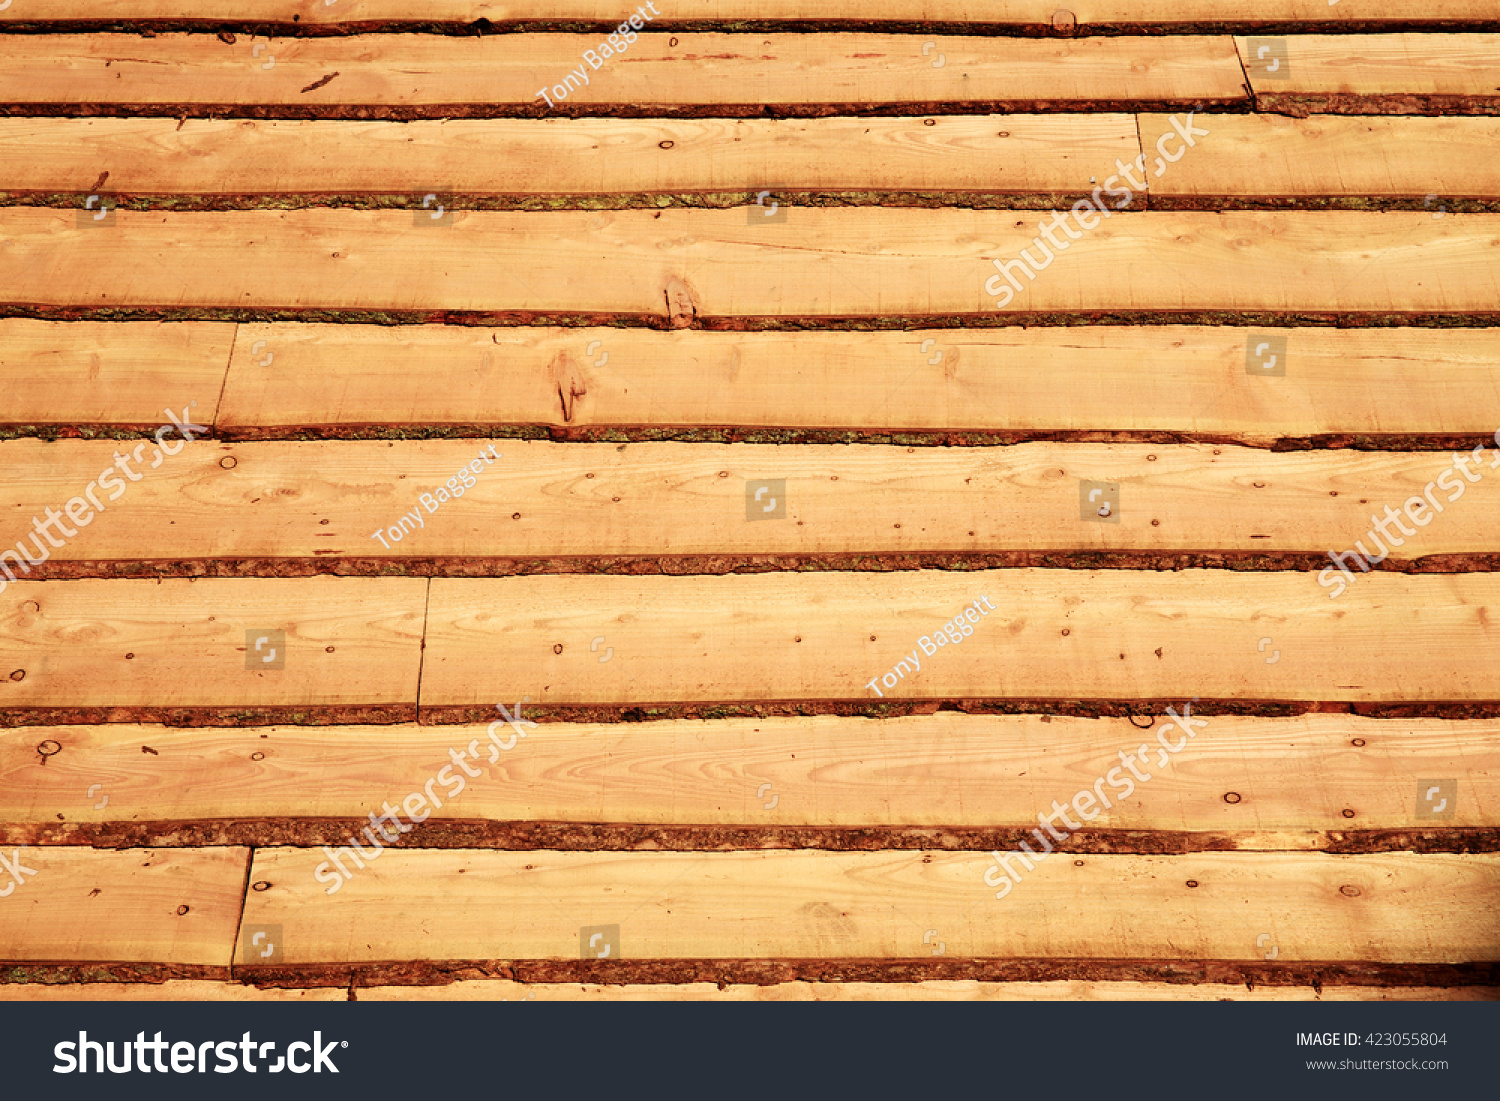 Rough Wood Planks ~ Rough cut wood planks background stock photo